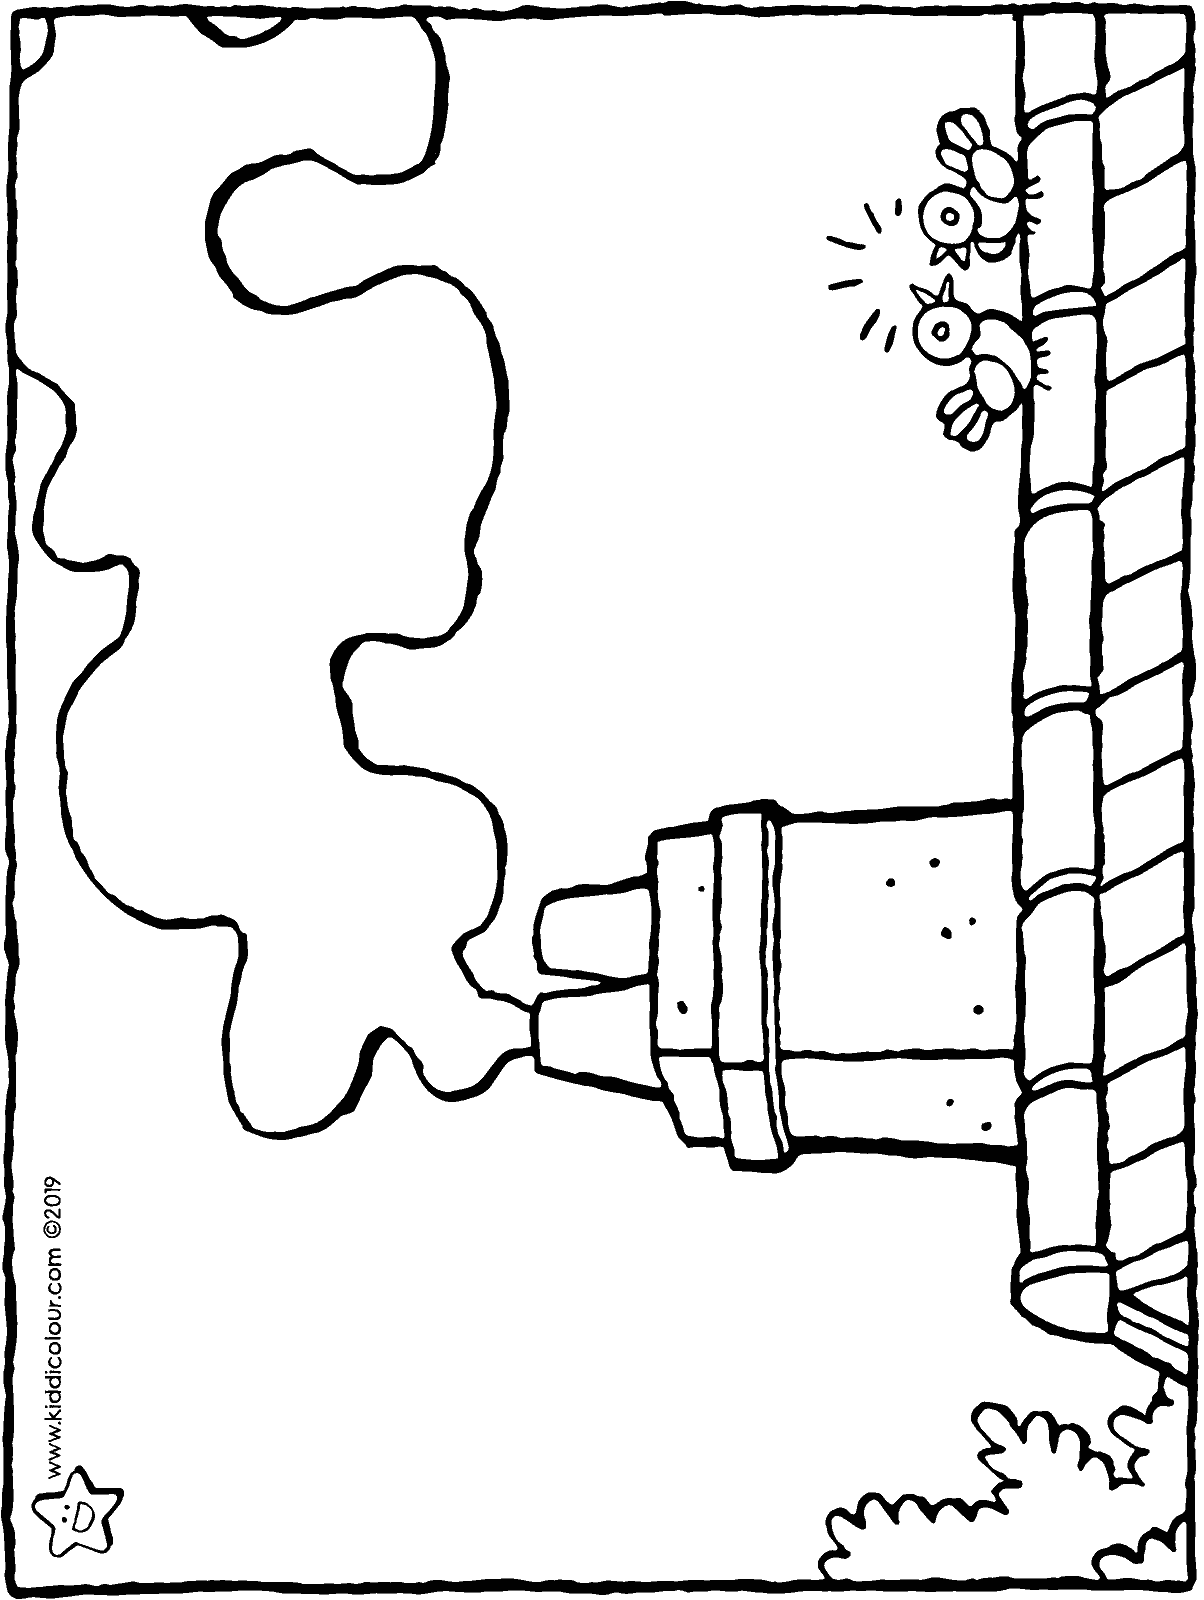 chimney colouring page drawing picture 01H